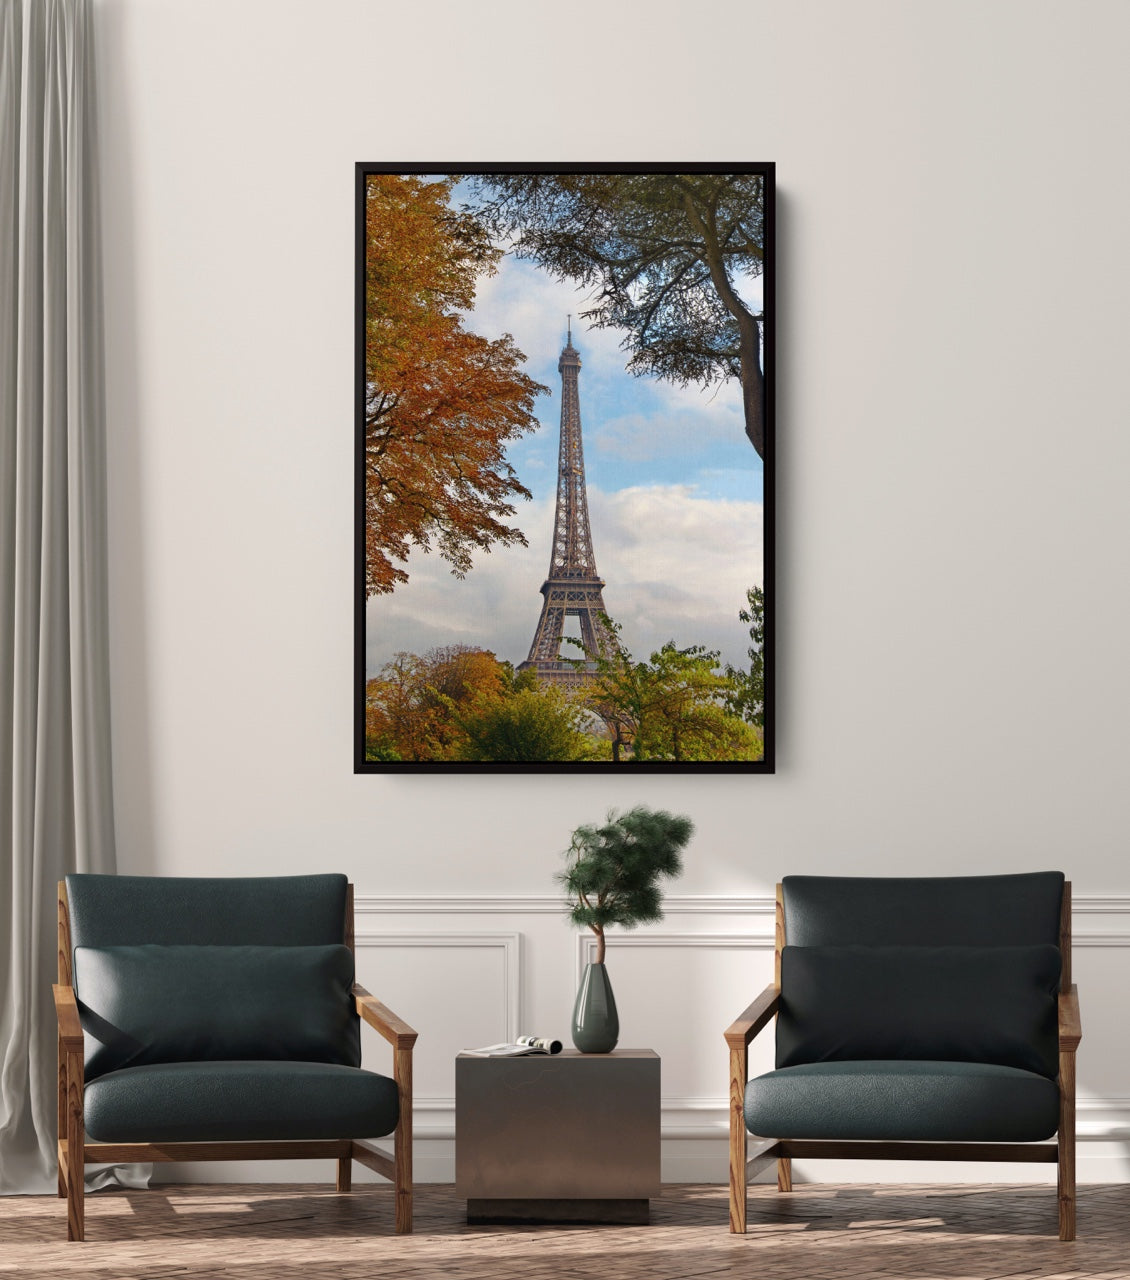 Mid century modern room with framed art of the Eiffel Tower, France